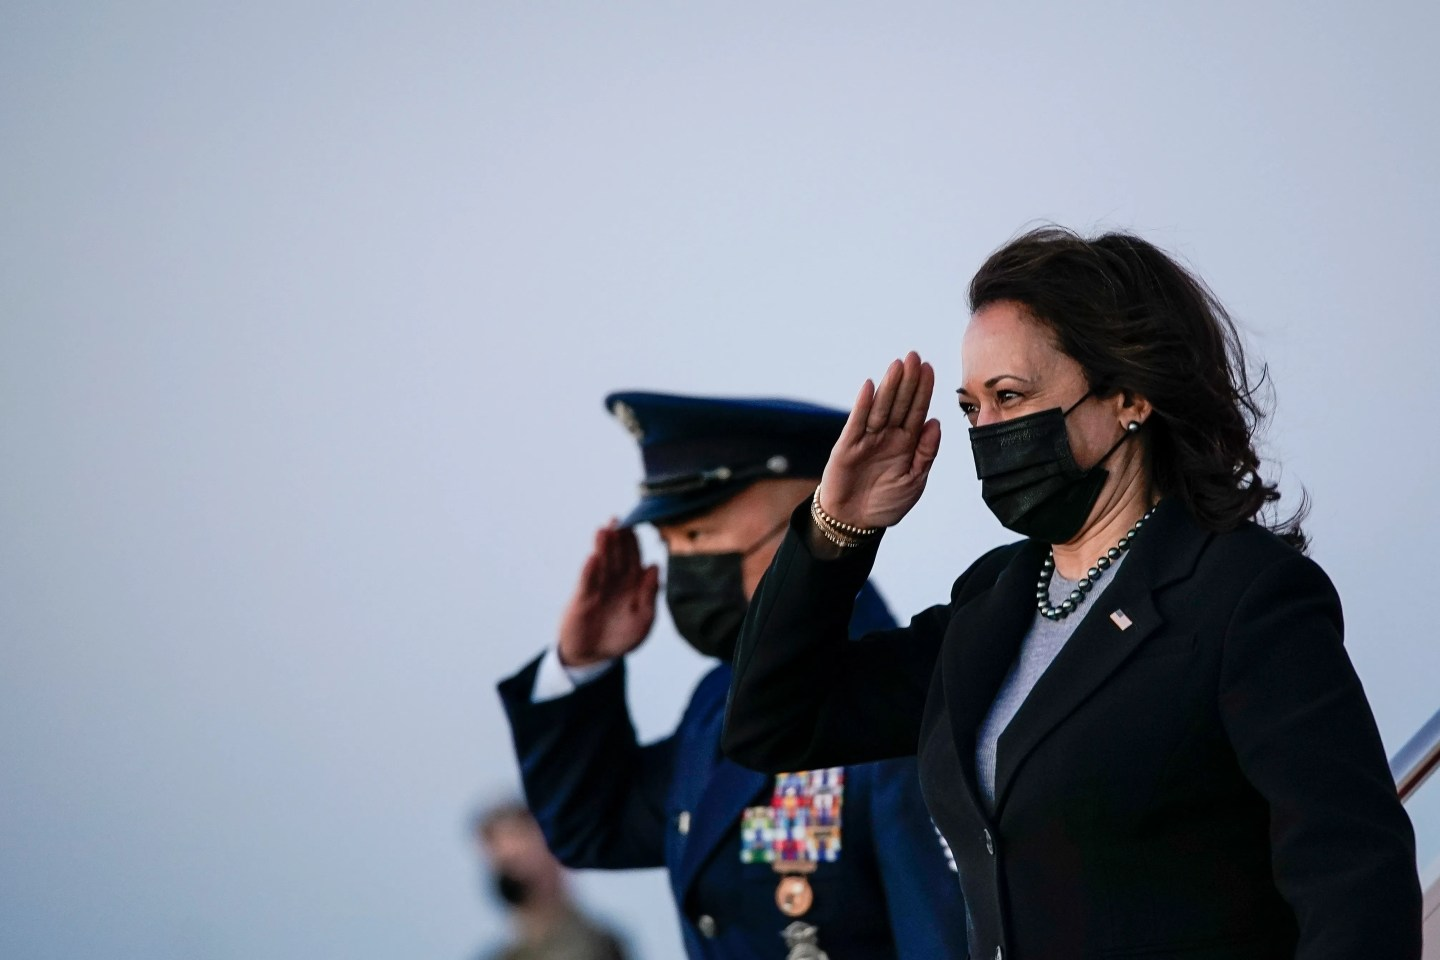 JOINT BASE ANDREWS, MD - MARCH 26: U.S. Vice President Kamala Harris salutes as she exits Air Force Two upon arrival at Joint Base Andrews on March 26, 2021 in Joint Base Andrews, Maryland. Harris traveled to New Haven, Connecticut to promote the Biden administration's recently passed $1.9 billion federal stimulus package. (Photo by Drew Angerer/Getty Images)